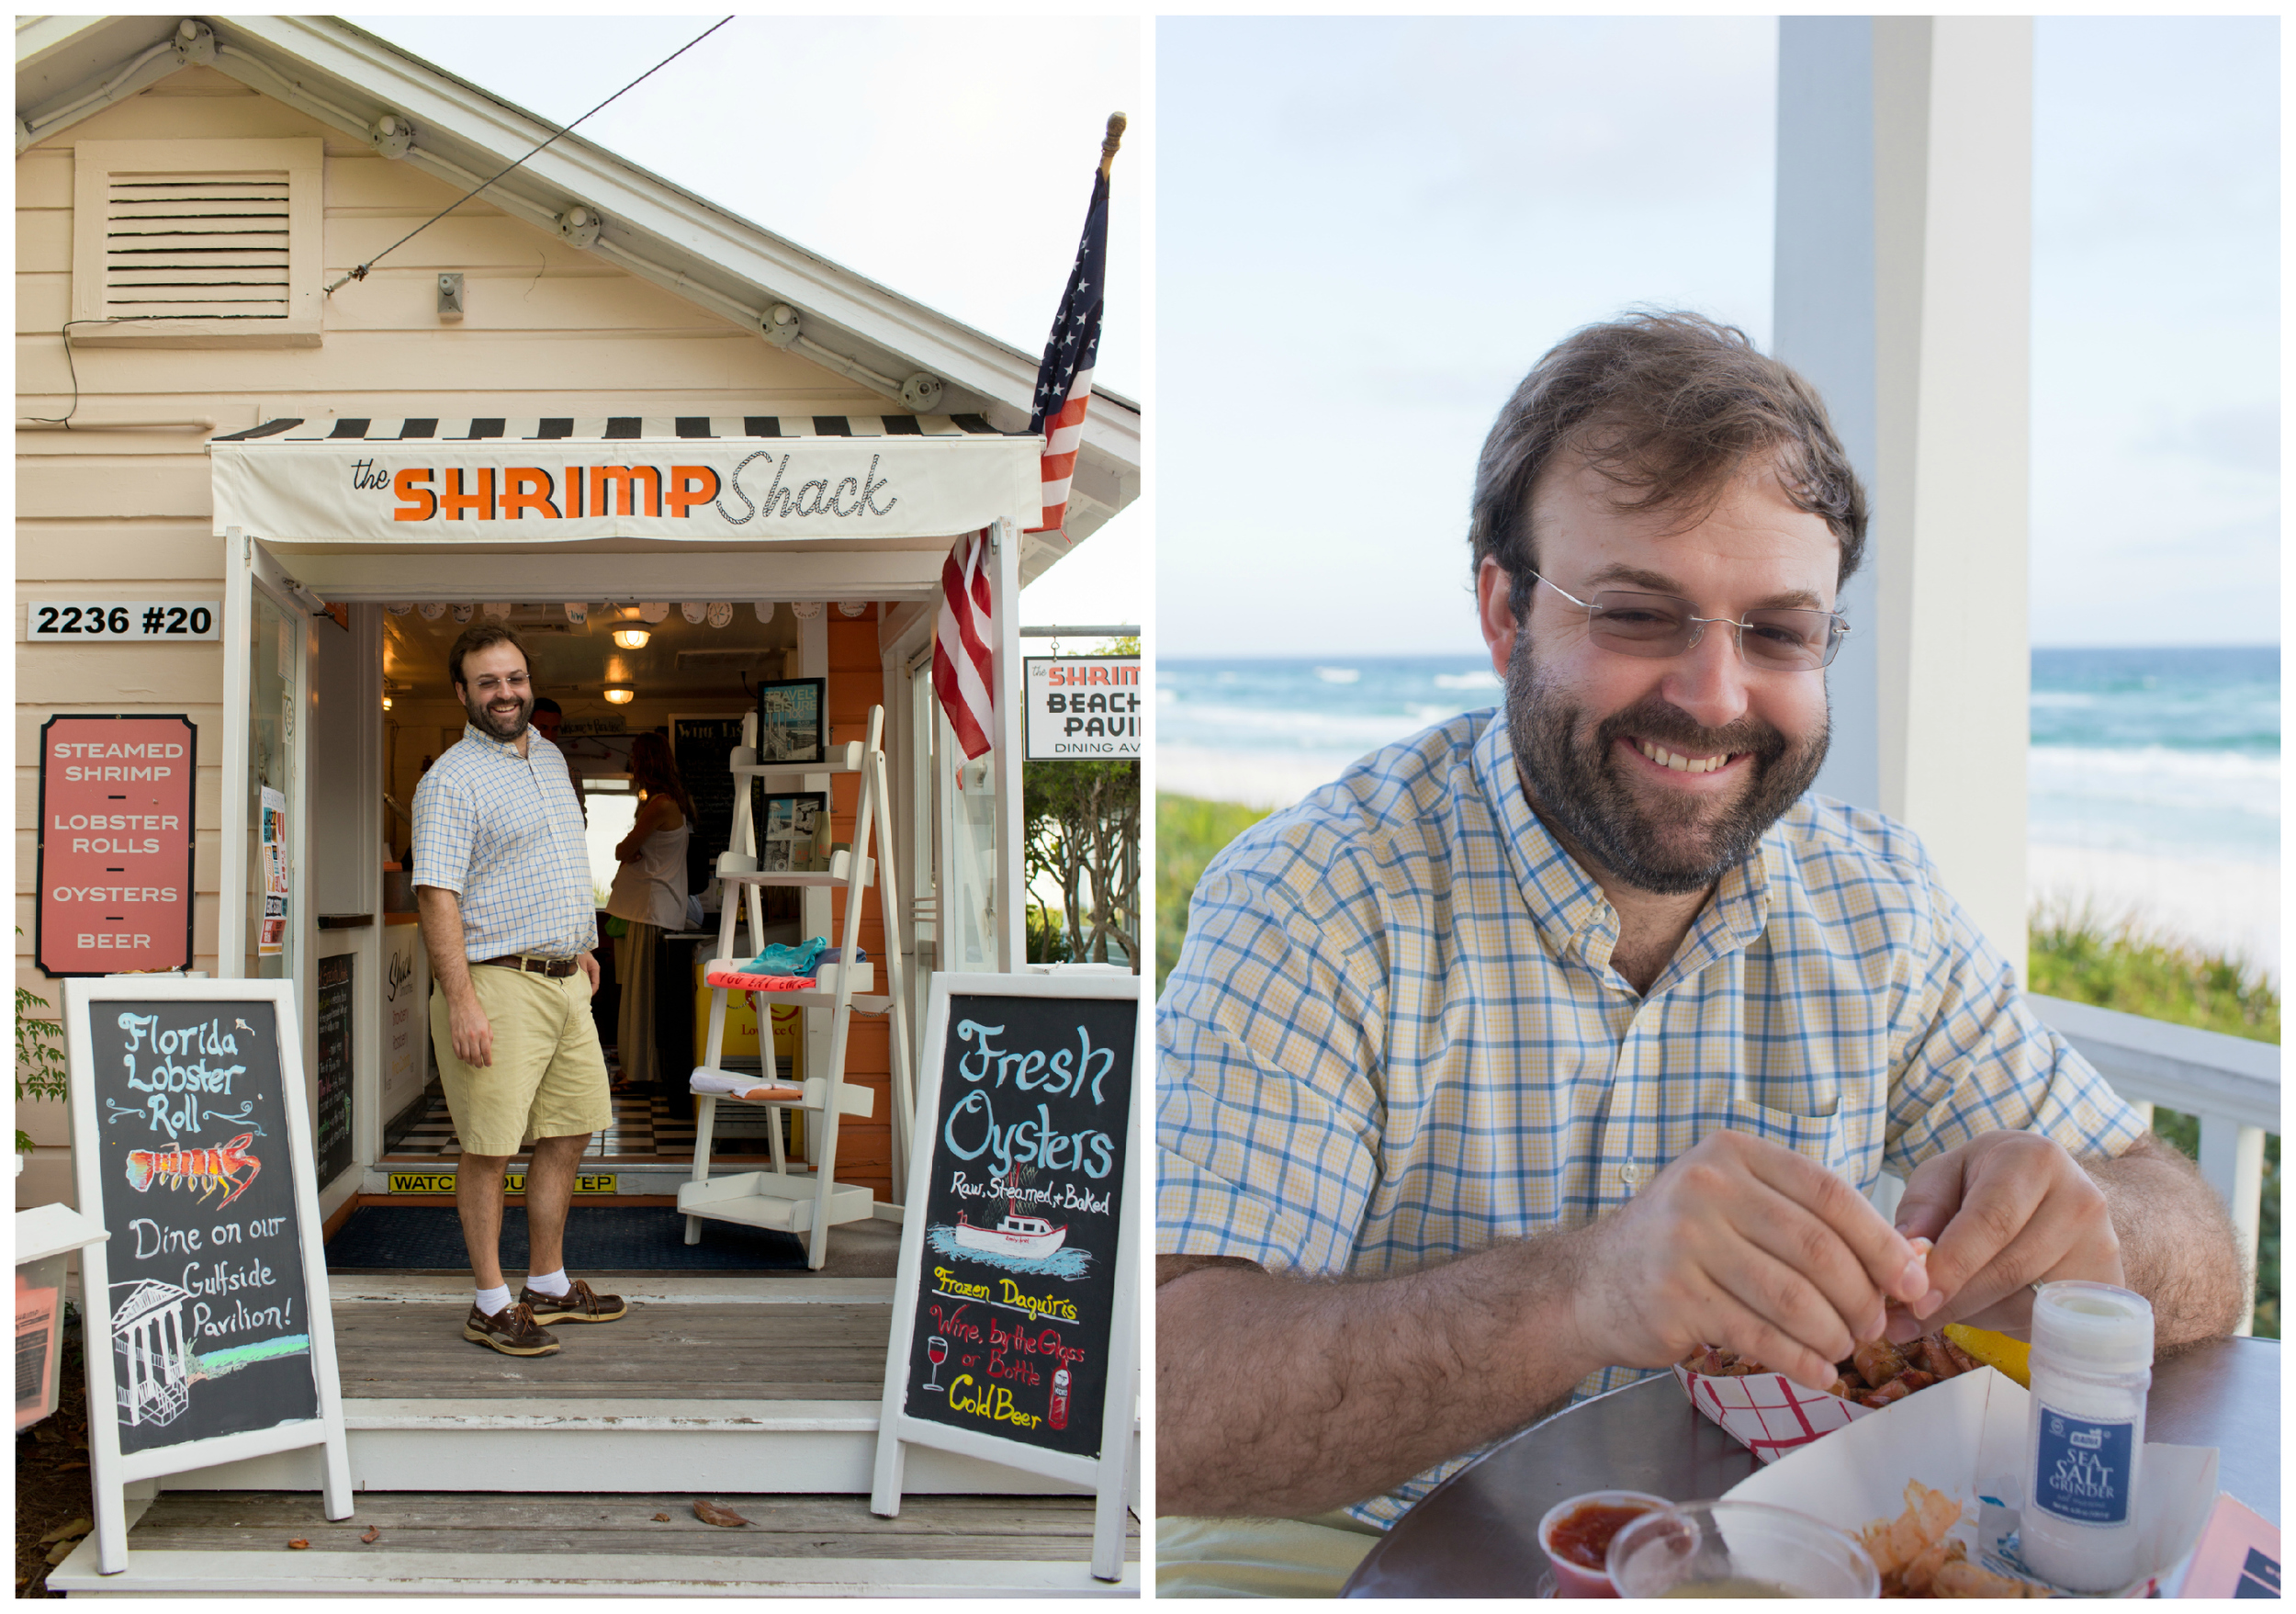 Alex at the Shrimp Shack in Seaside, Florida